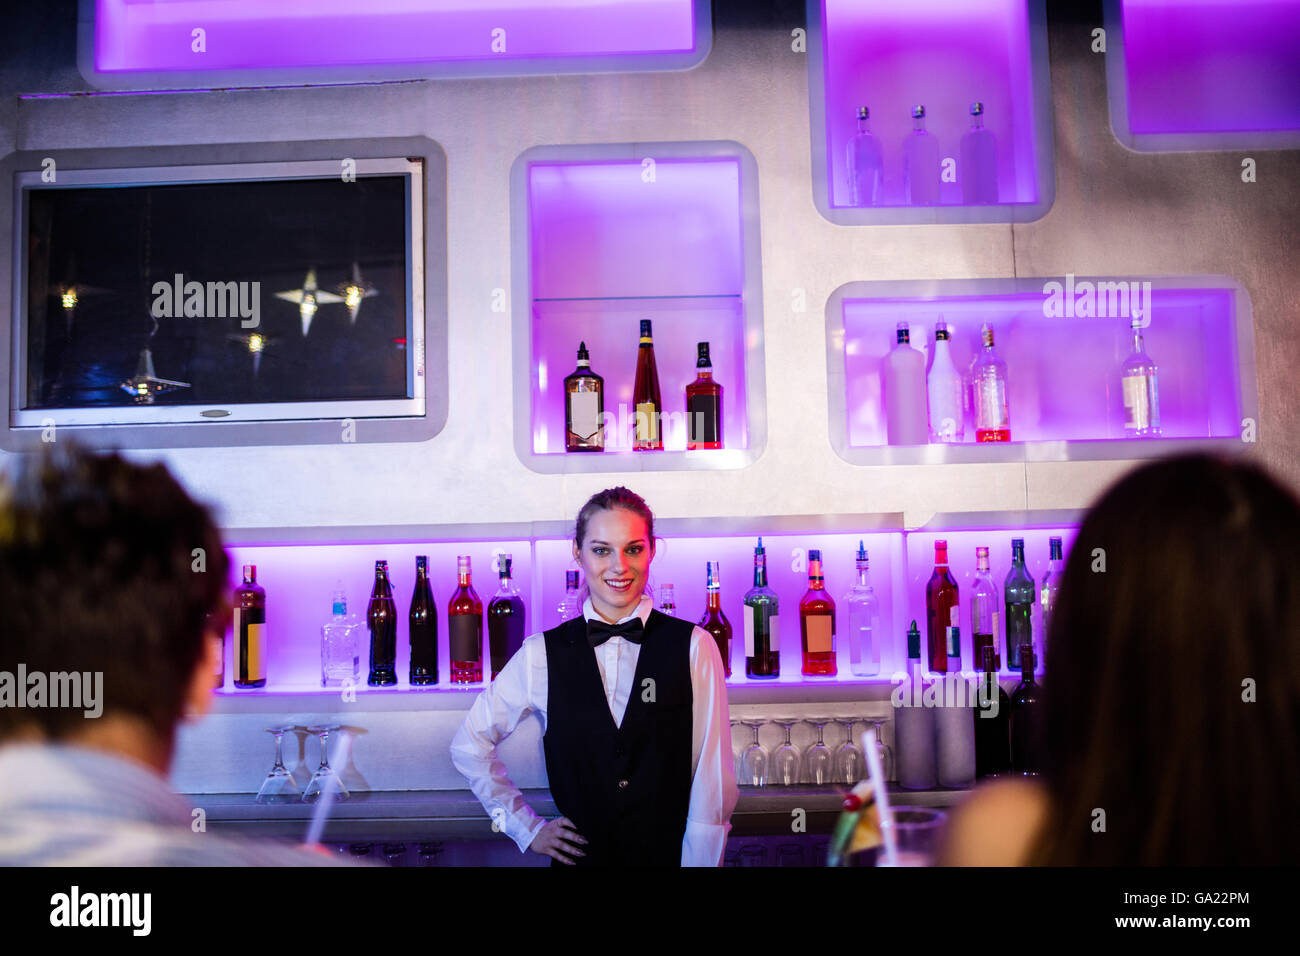 Barmaid standing with hand on hip on bar counter - Stock Image